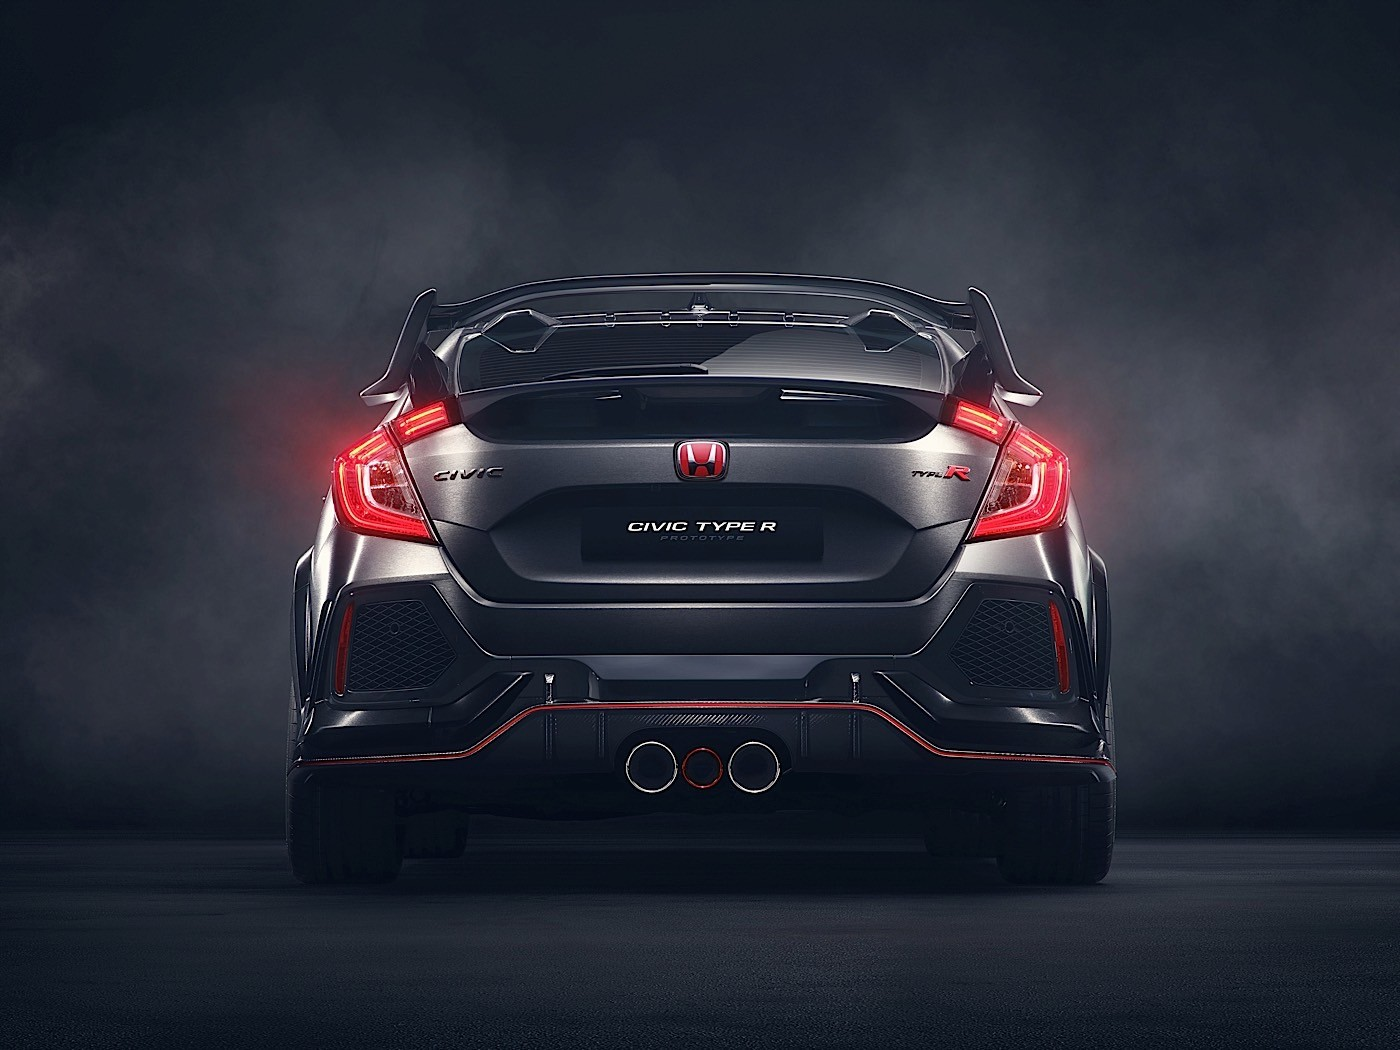 2017 Honda Civic Type R Black Edition Limited To 100